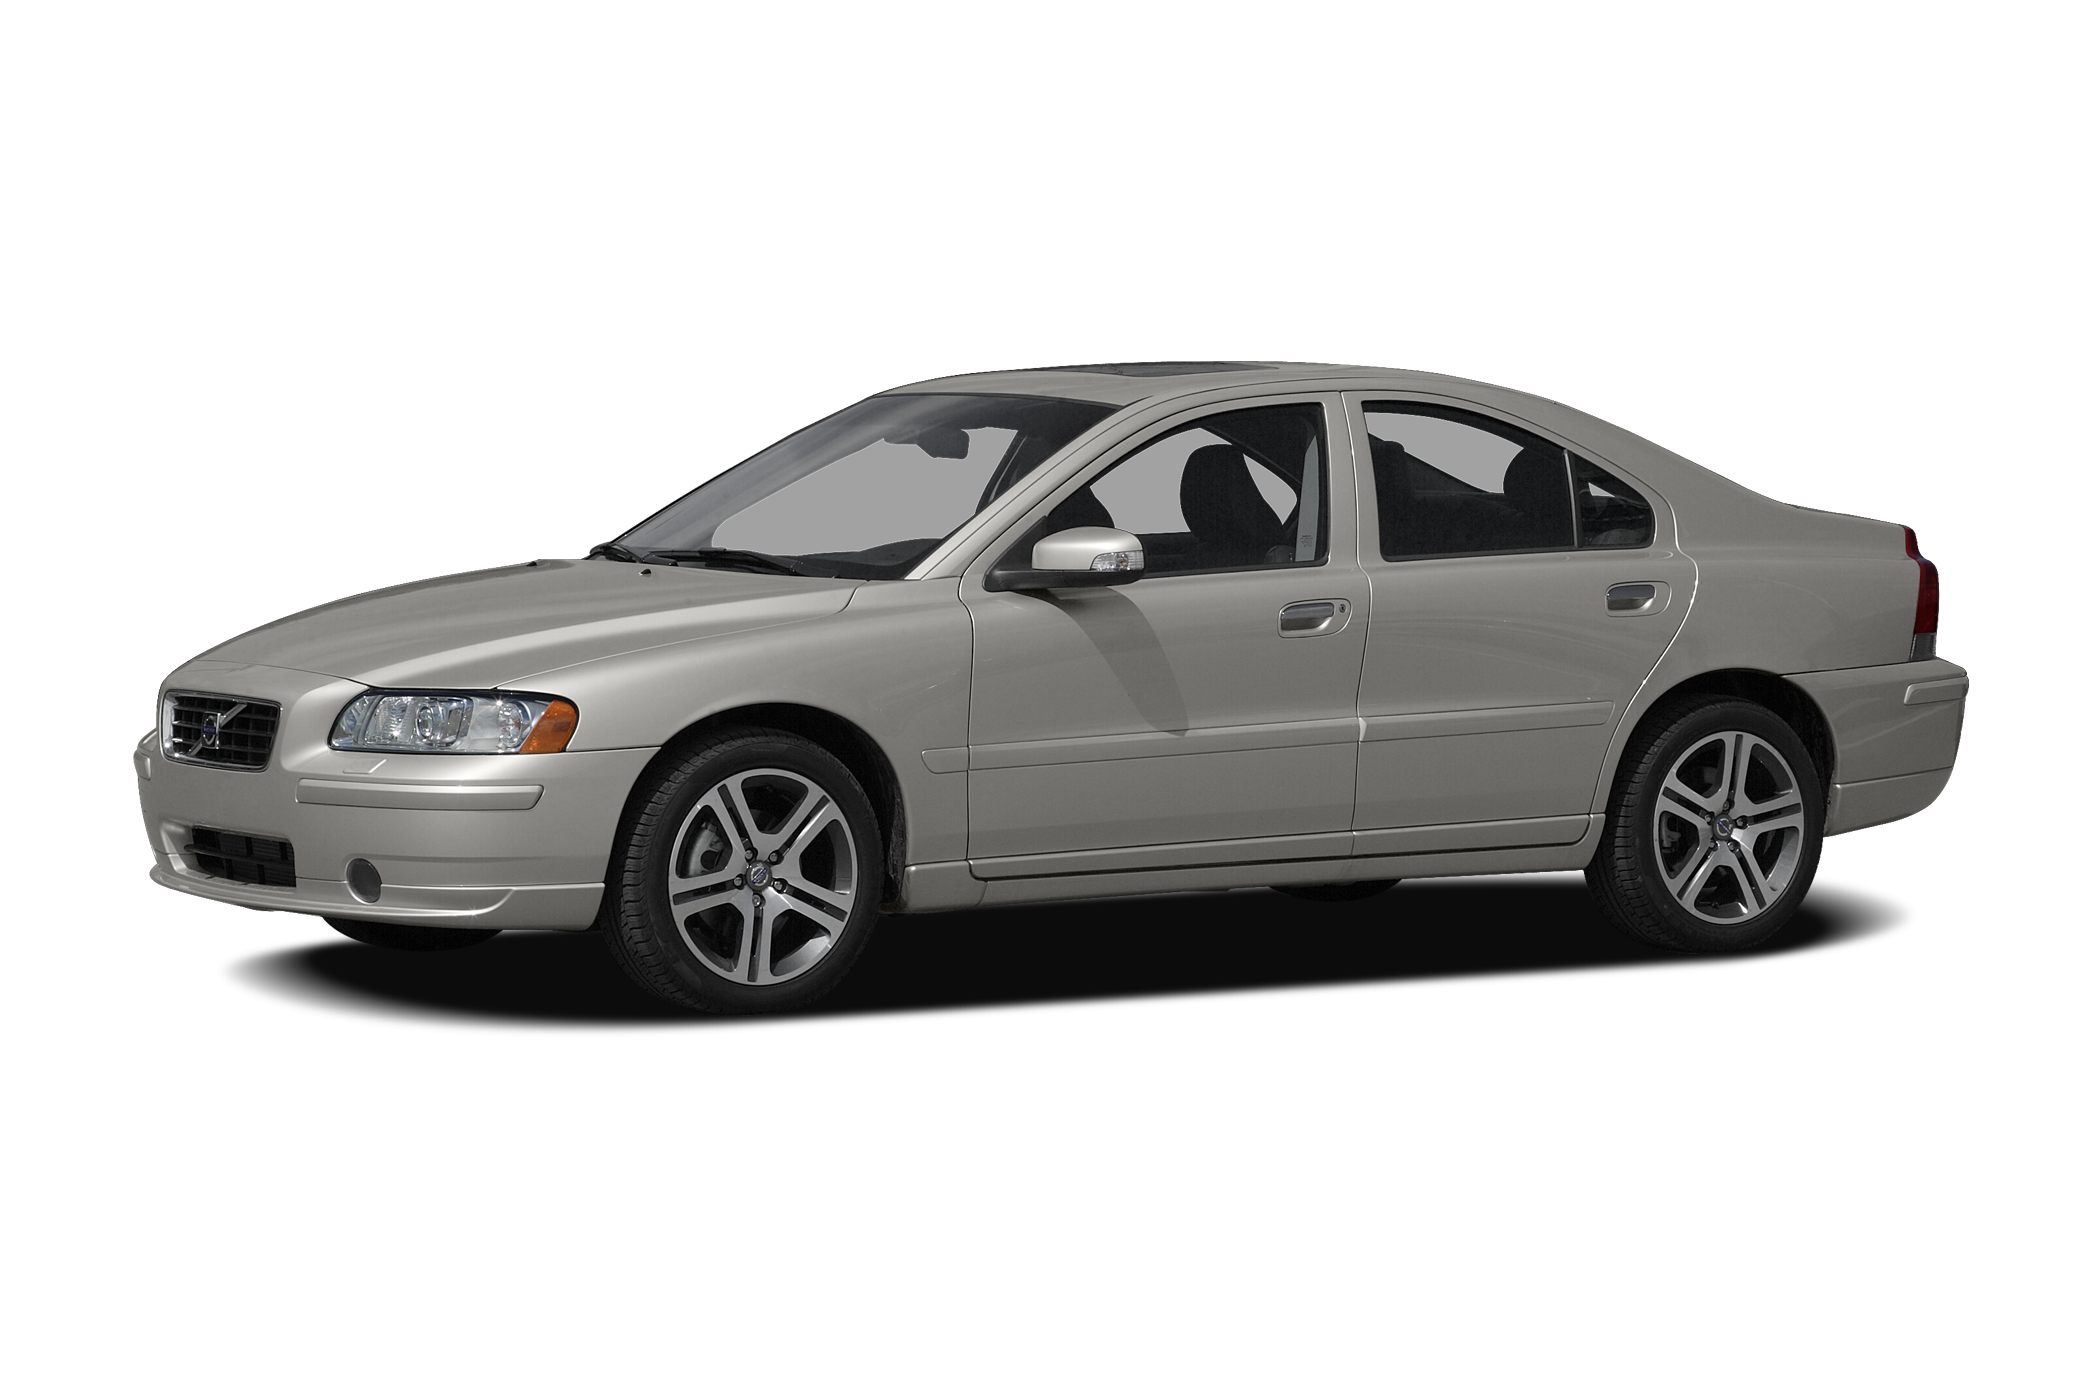 2008 Volvo S60 2.5T Sedan for sale in Penns Grove for $0 with 131,910 miles